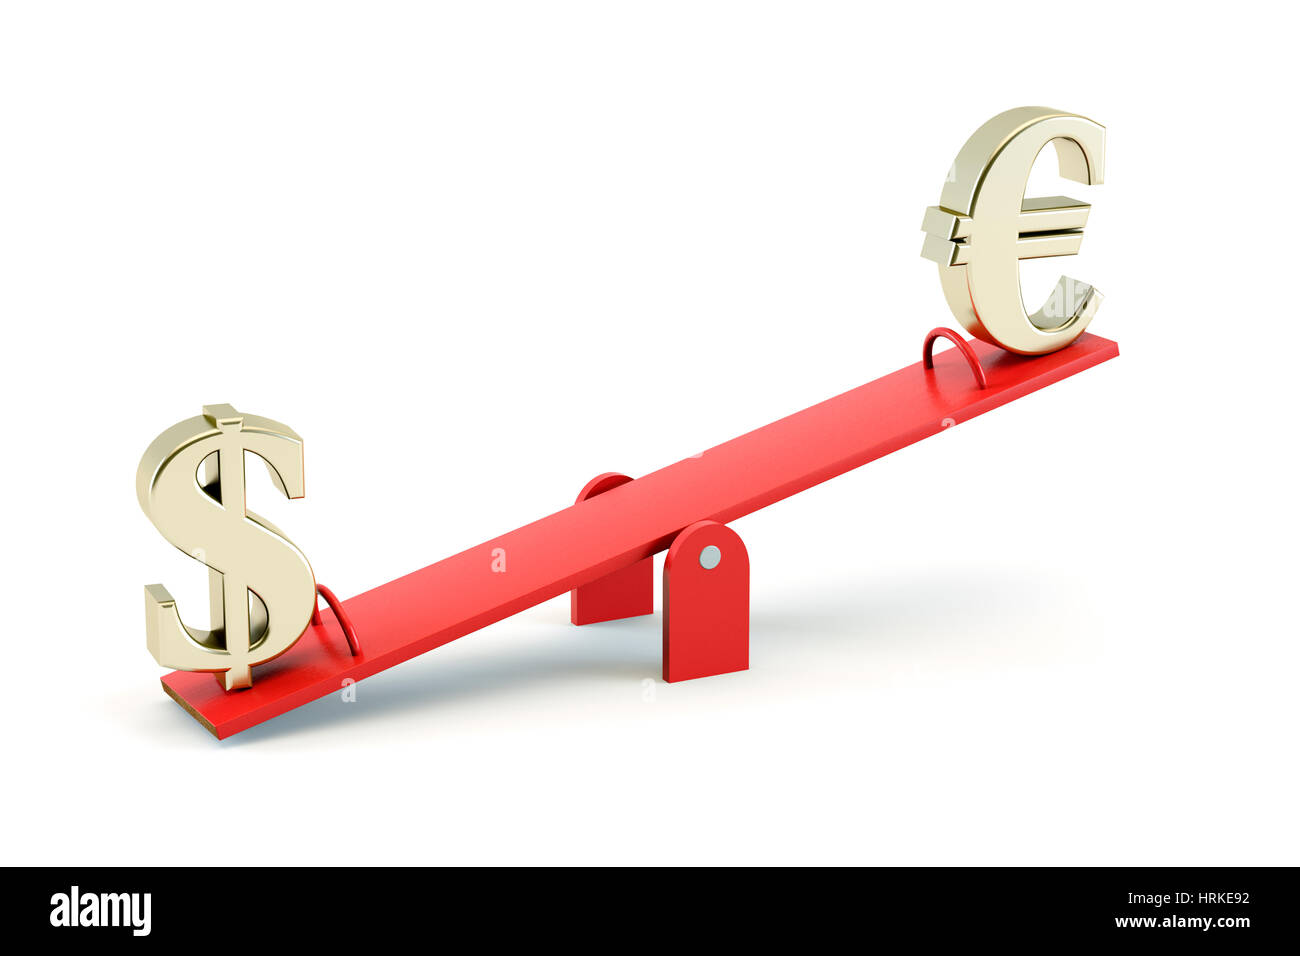 Gold US Dollar symbol and gold European Euro symbol on a Seesaw isolated on a white background - exchange rate concept - Stock Image